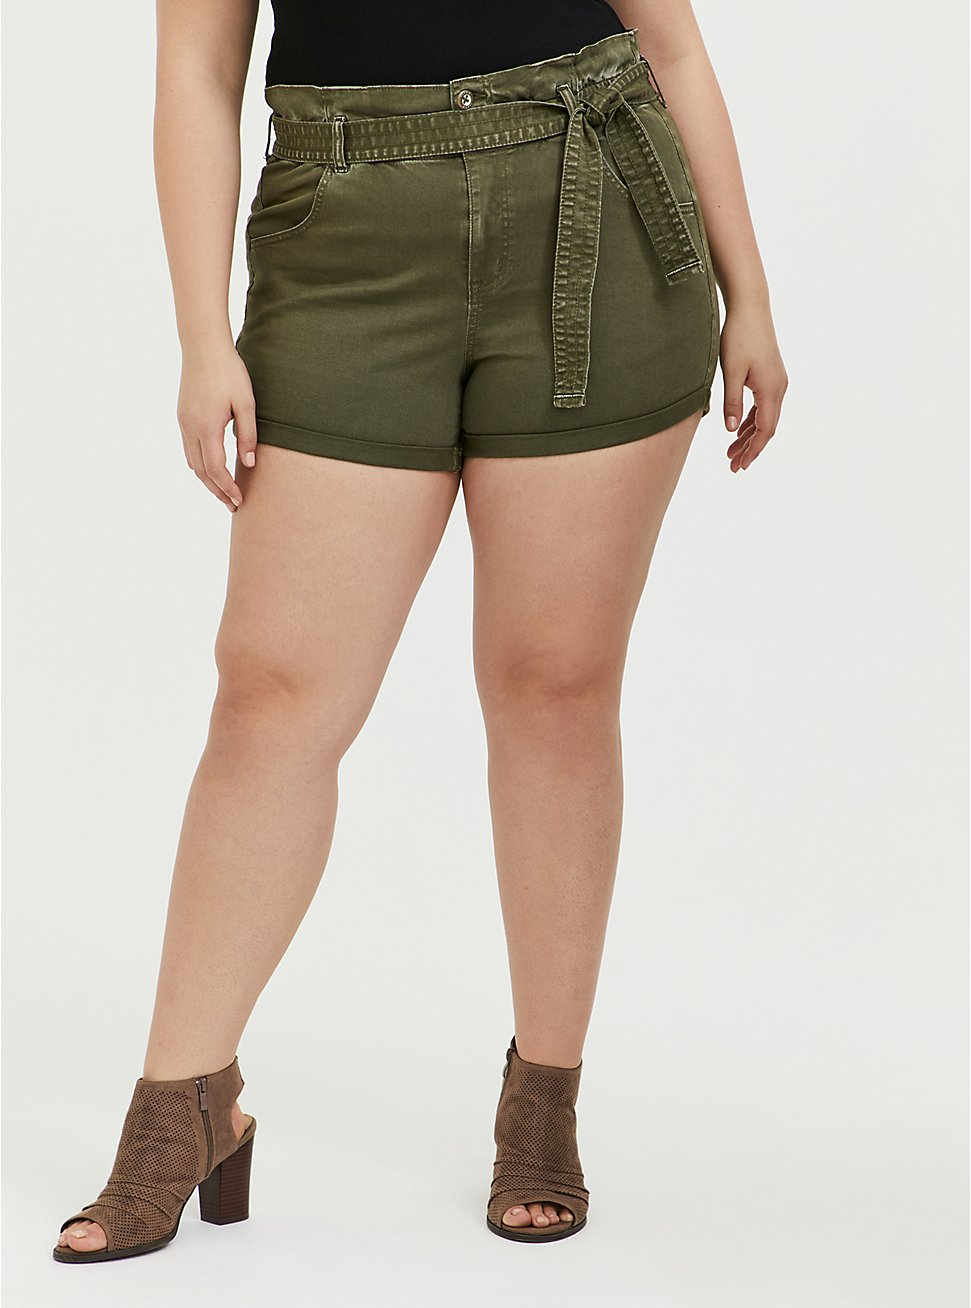 Plus Size Self Tie Paperbag Waist Short Short - Twill Olive Green , , hi-res